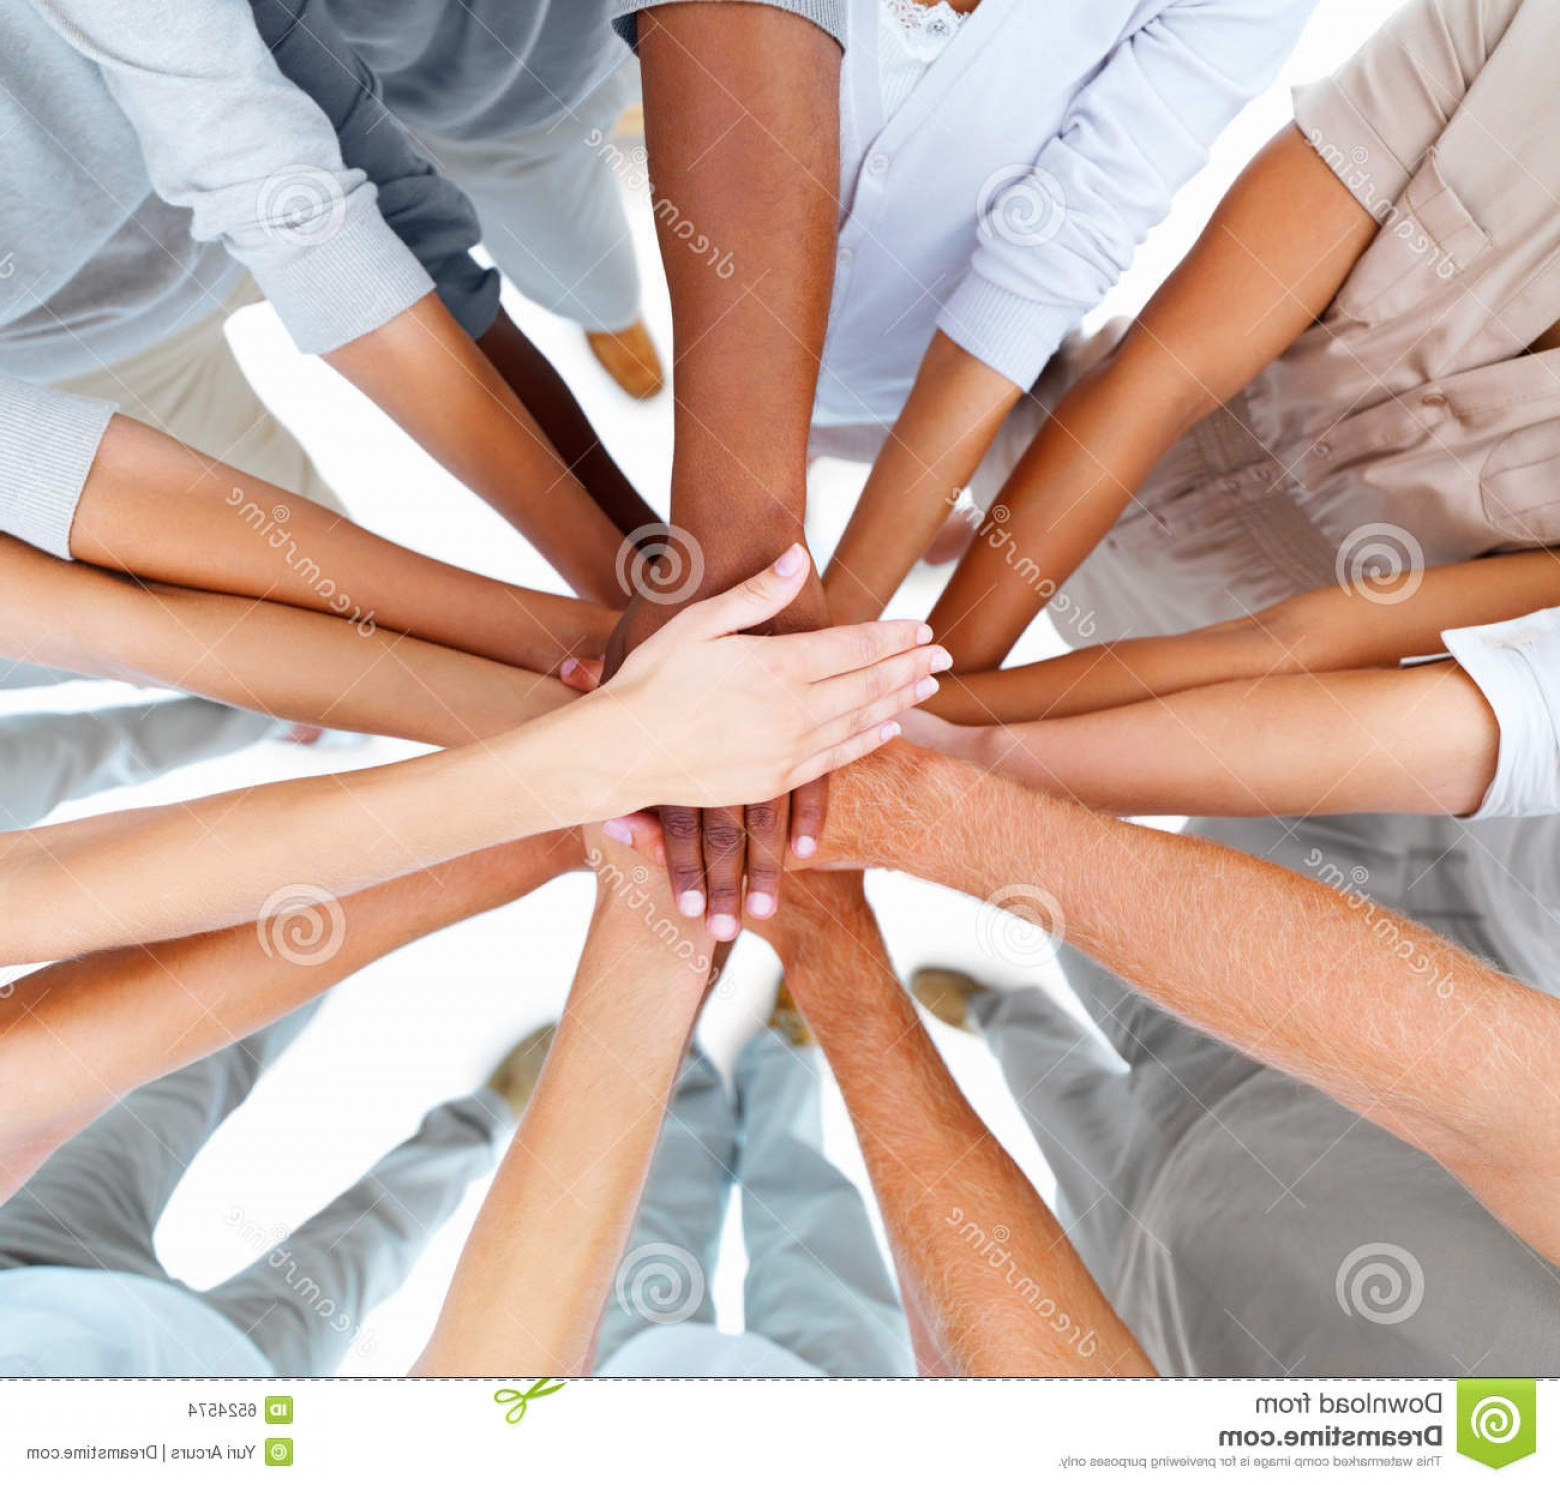 Vector Group Of Hands Overlapped: Stock Images Business People Hands Overlapping To Show Teamwork Image